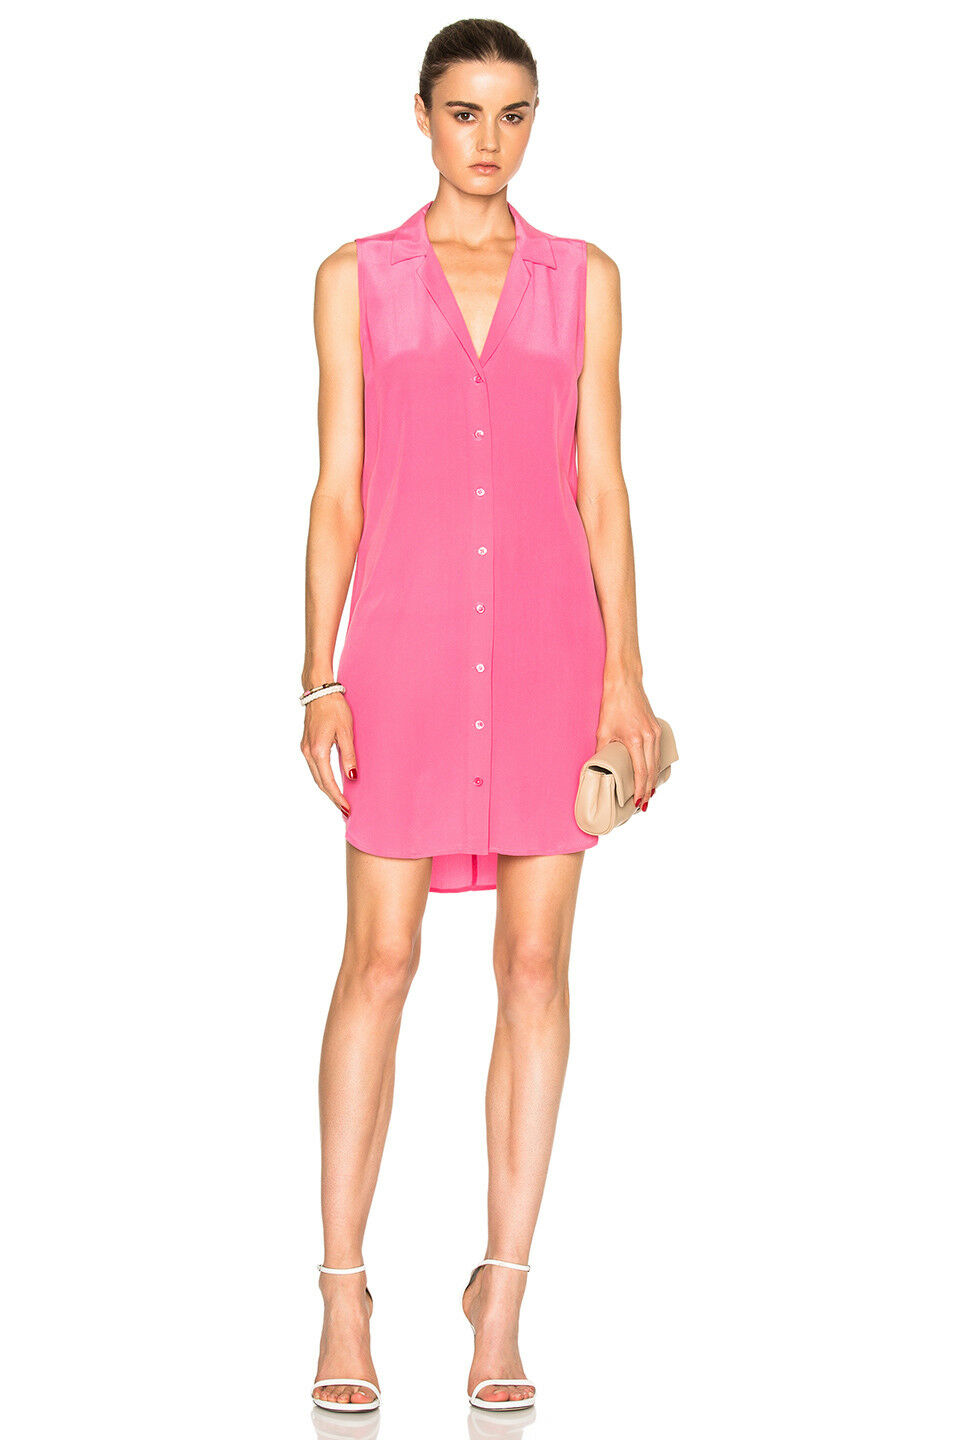 NEW Equipment 'Adalyn' Sleeveless Silk Shirtdress in Pink - Size S